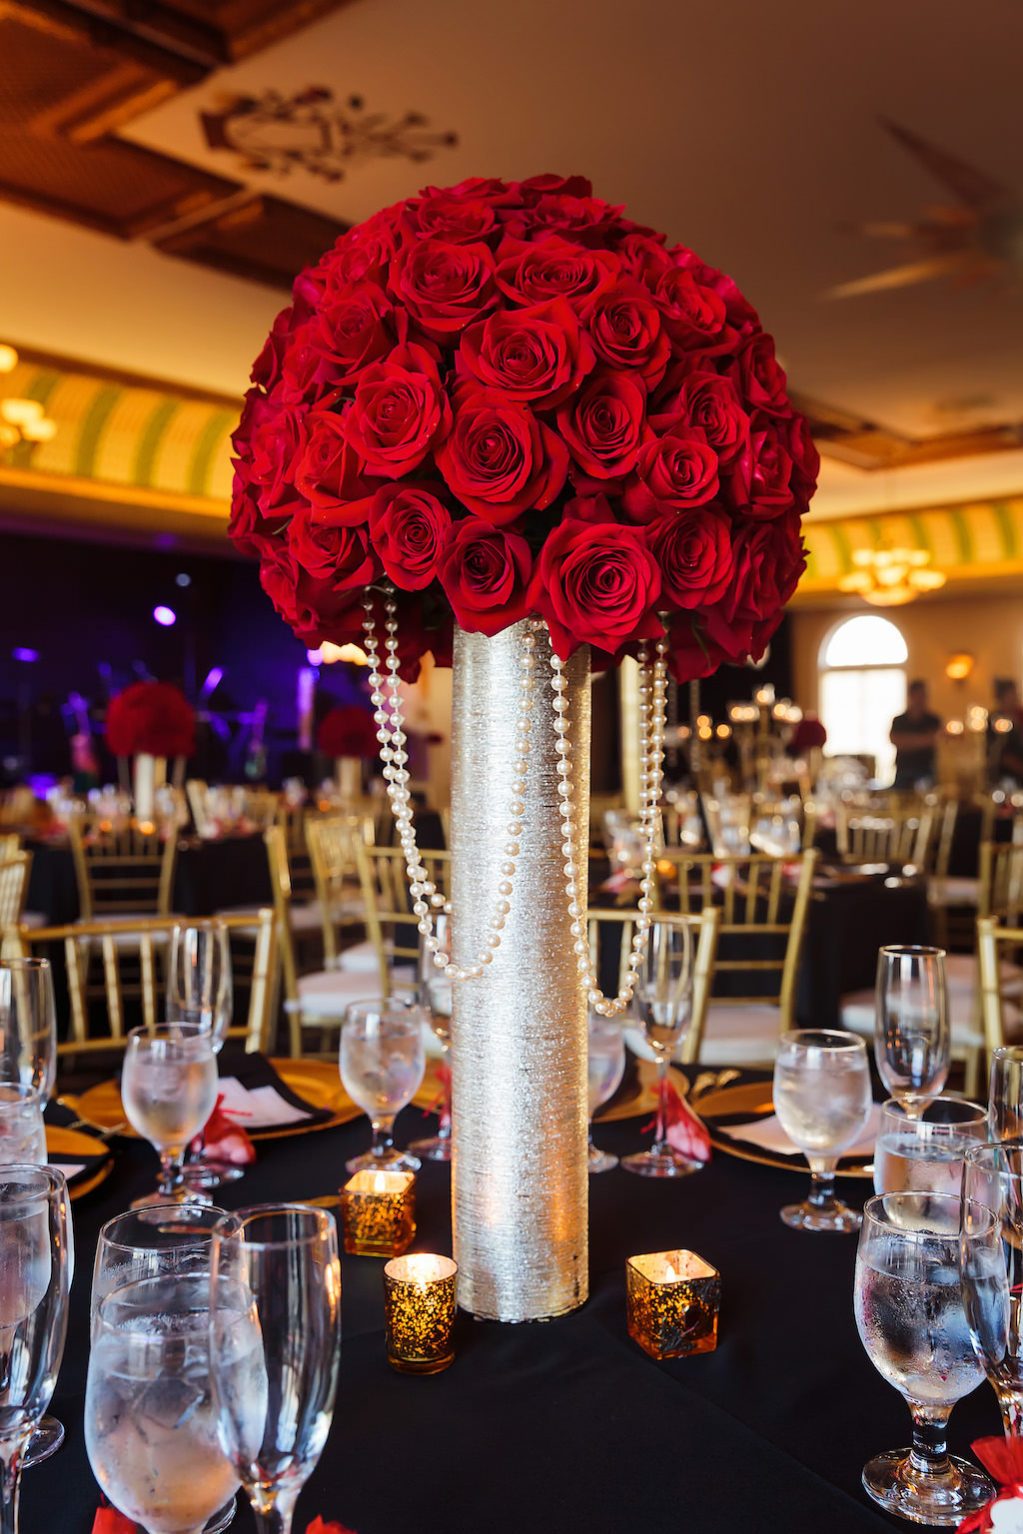 Black Vintage 1920's Great Gatsby Inspired Wedding Reception with Tall Red Rose Centerpieces | Downtown Tampa Ybor City Wedding Venue Italian Club